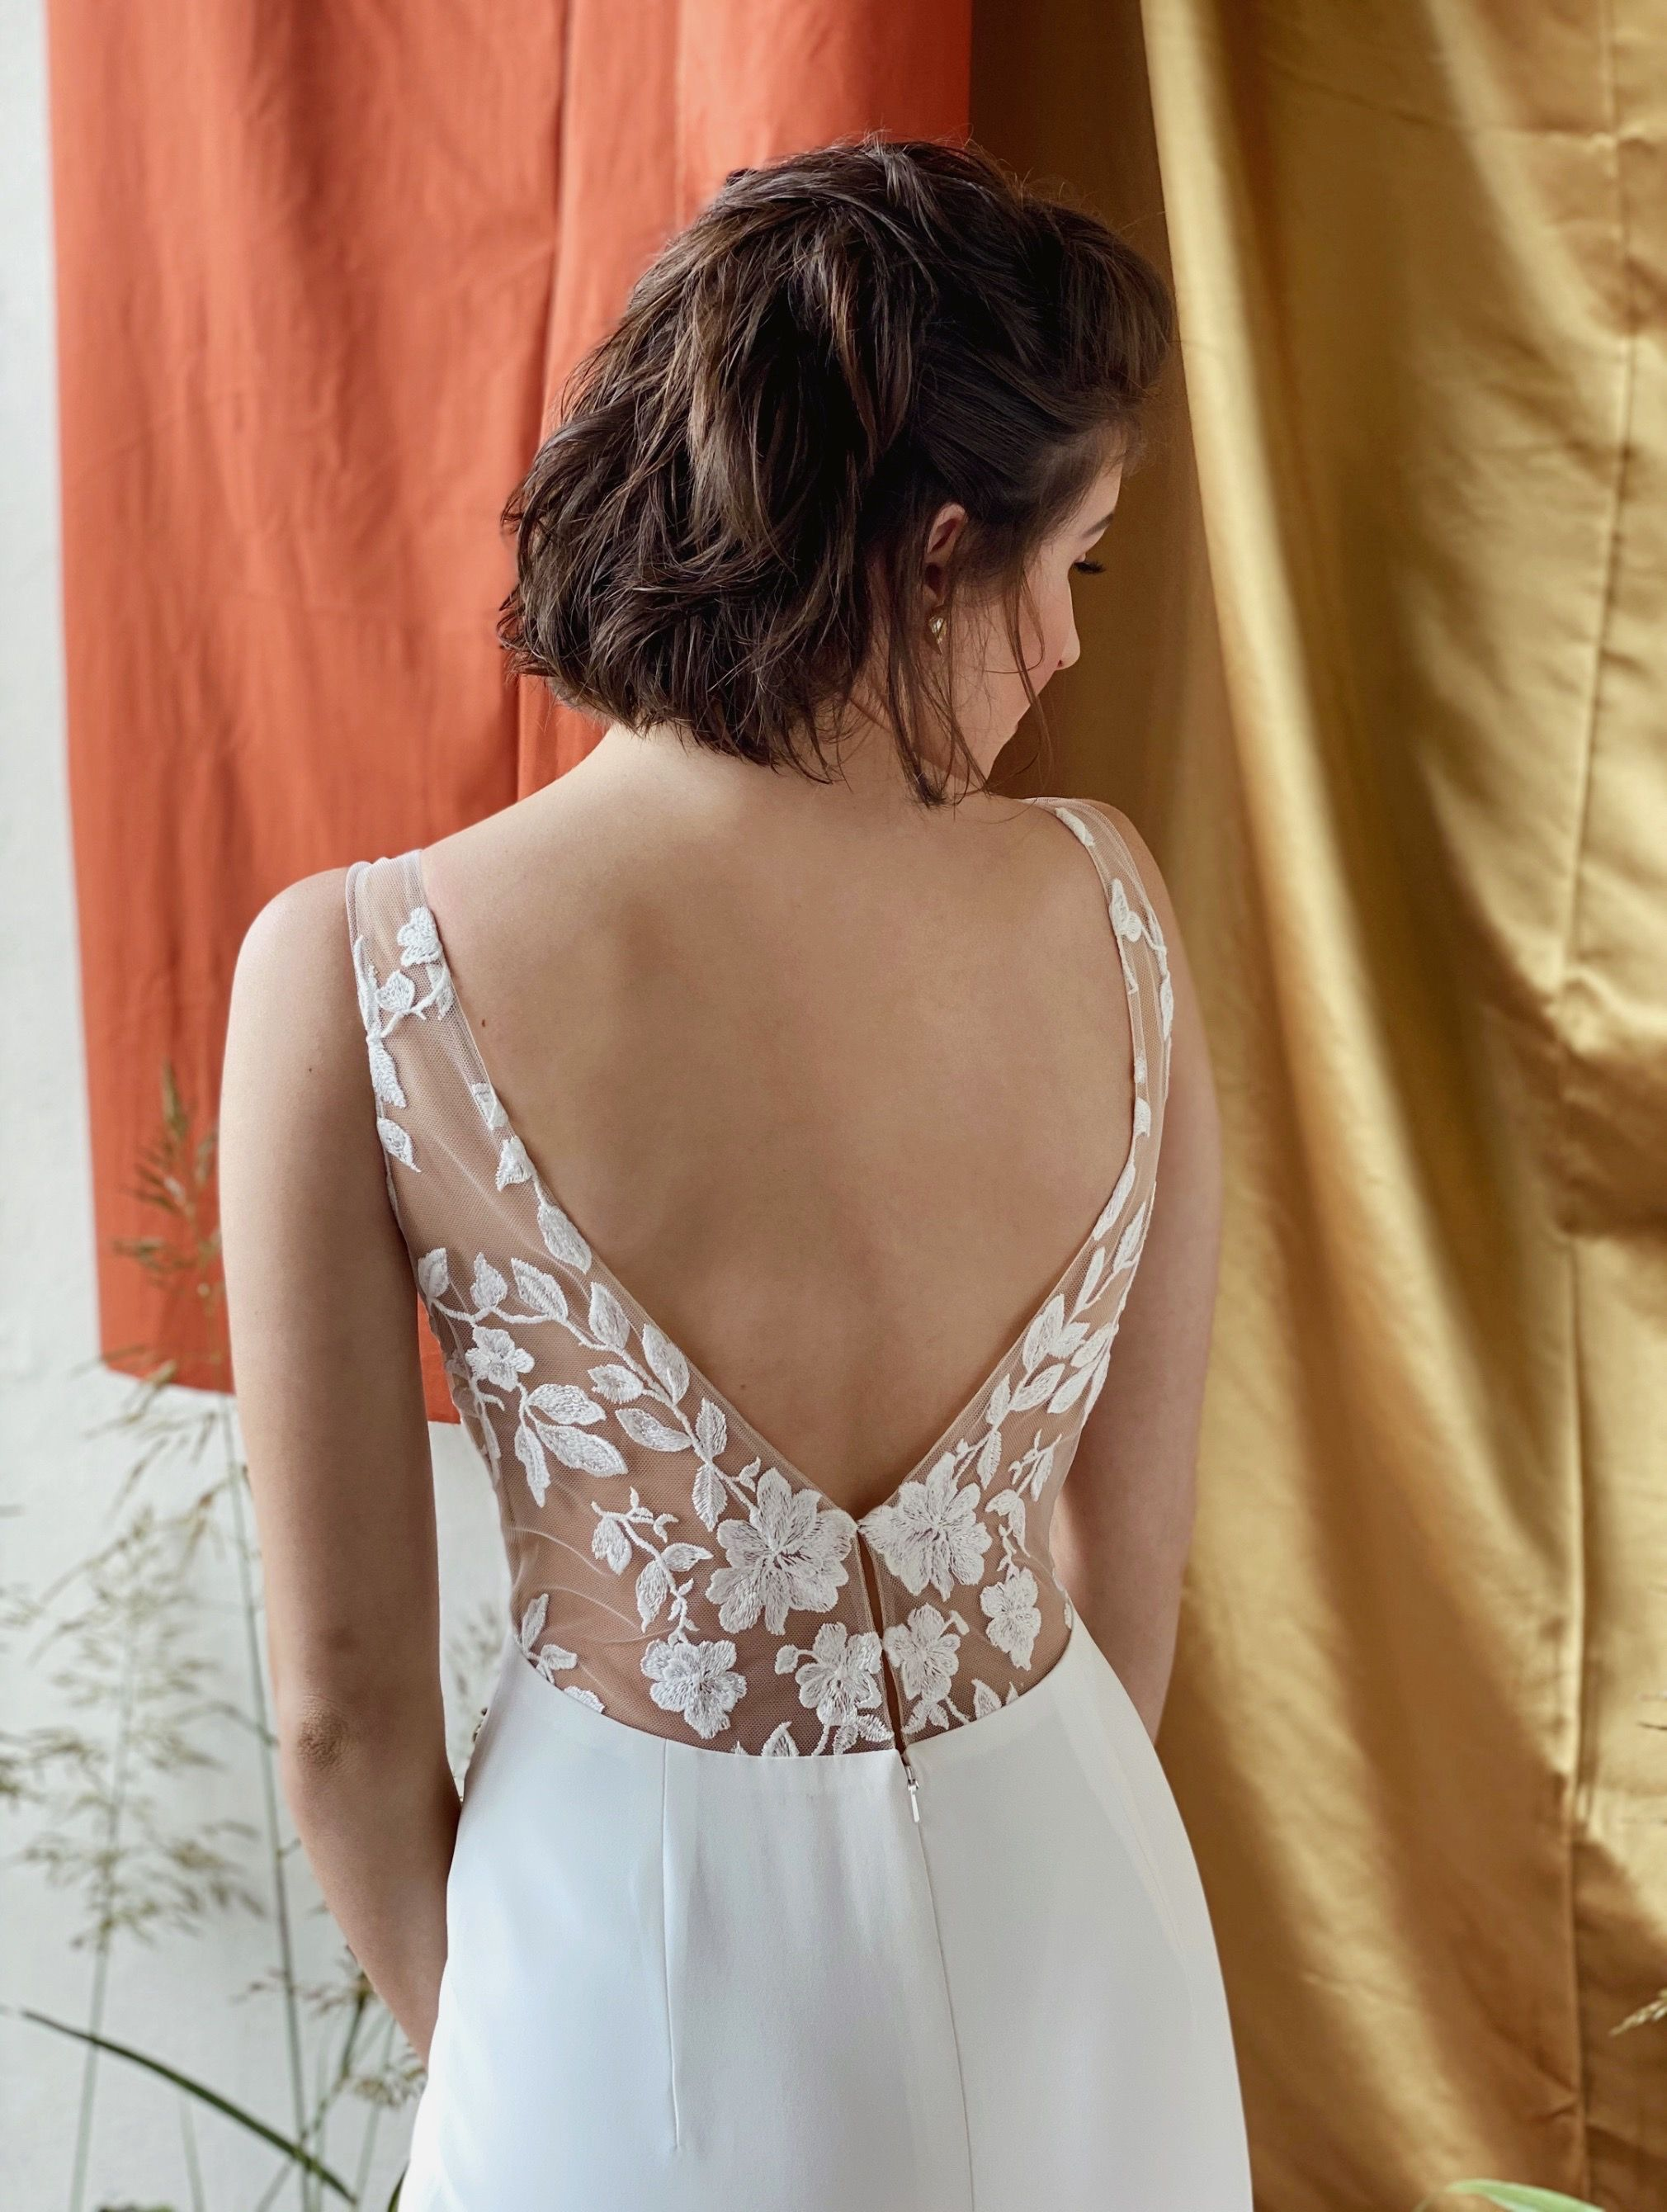 Willow By Anais Anette At Bryde Bridal Shop Tulsa Oklahoma In 2020 Lace Back Wedding Dress Minimal Wedding Dress Wedding Dress Boutiques